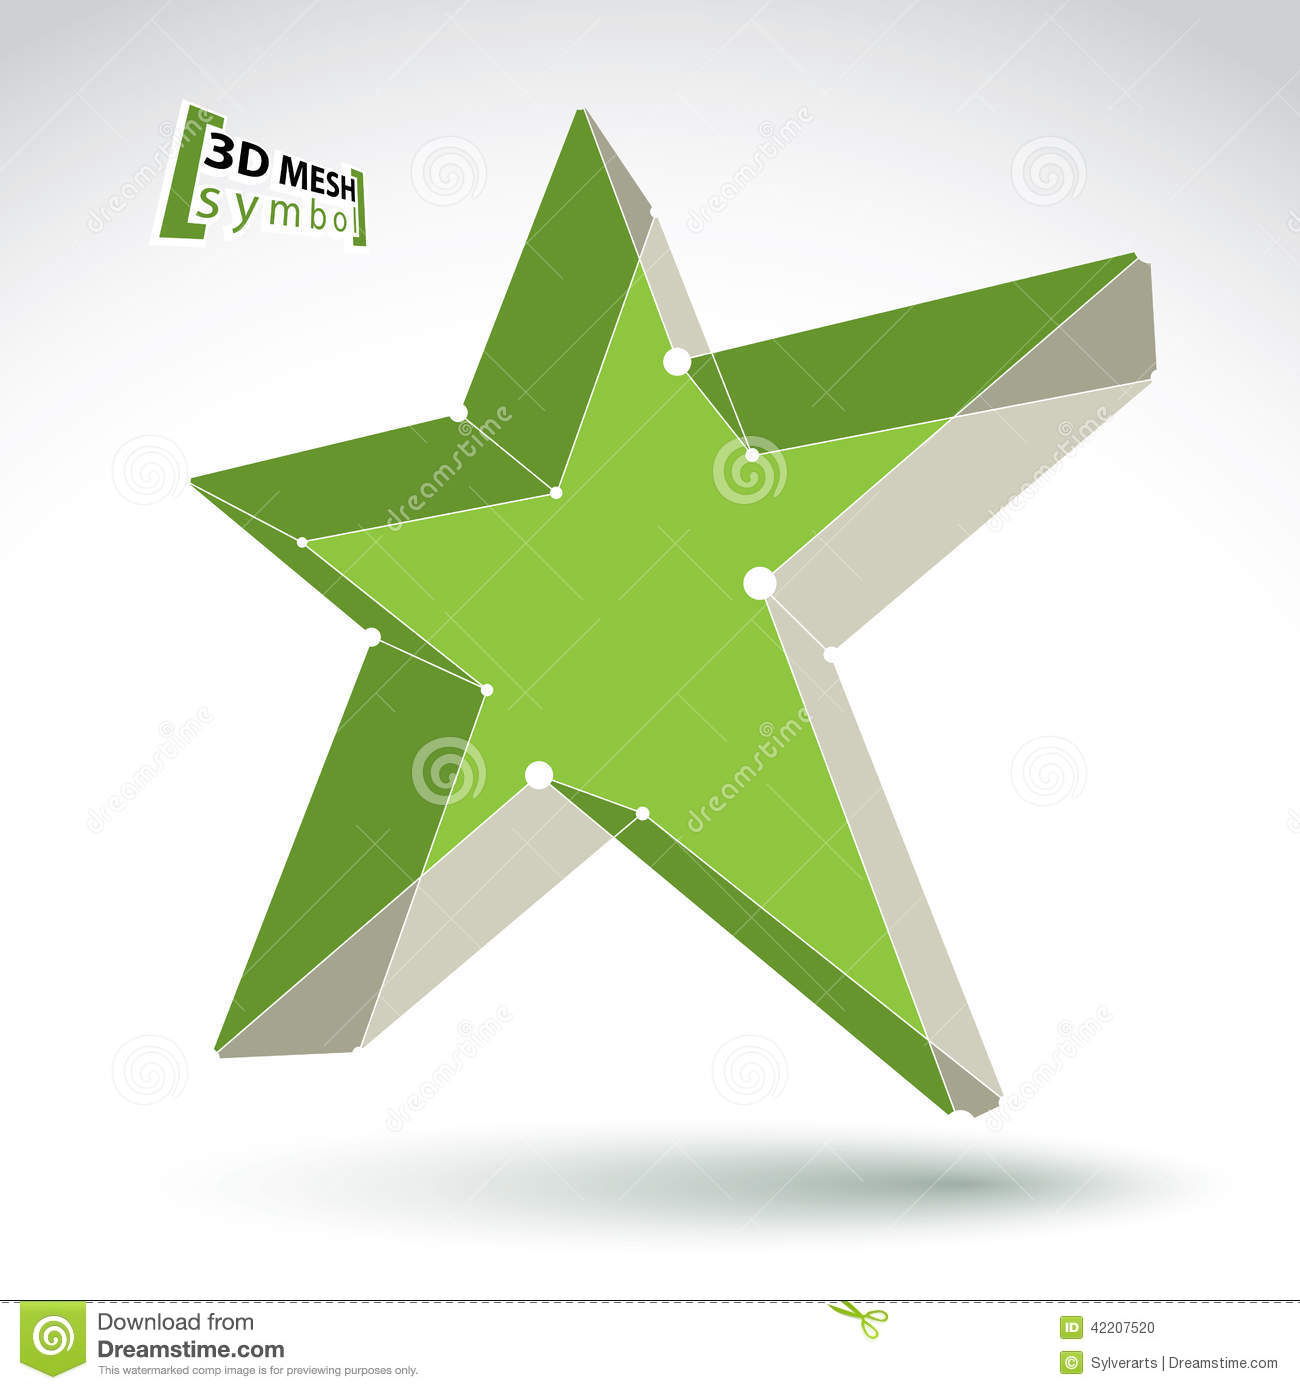 3d mesh green star sign  on white background, colorful e